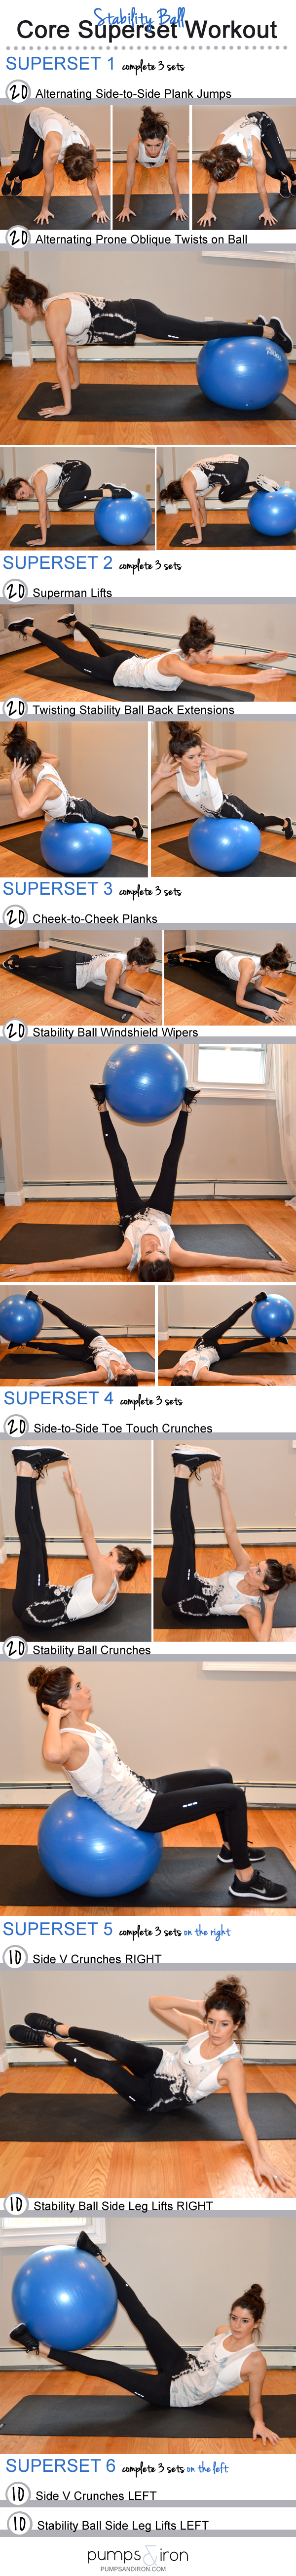 Stability ball superset core workout pumps and iron